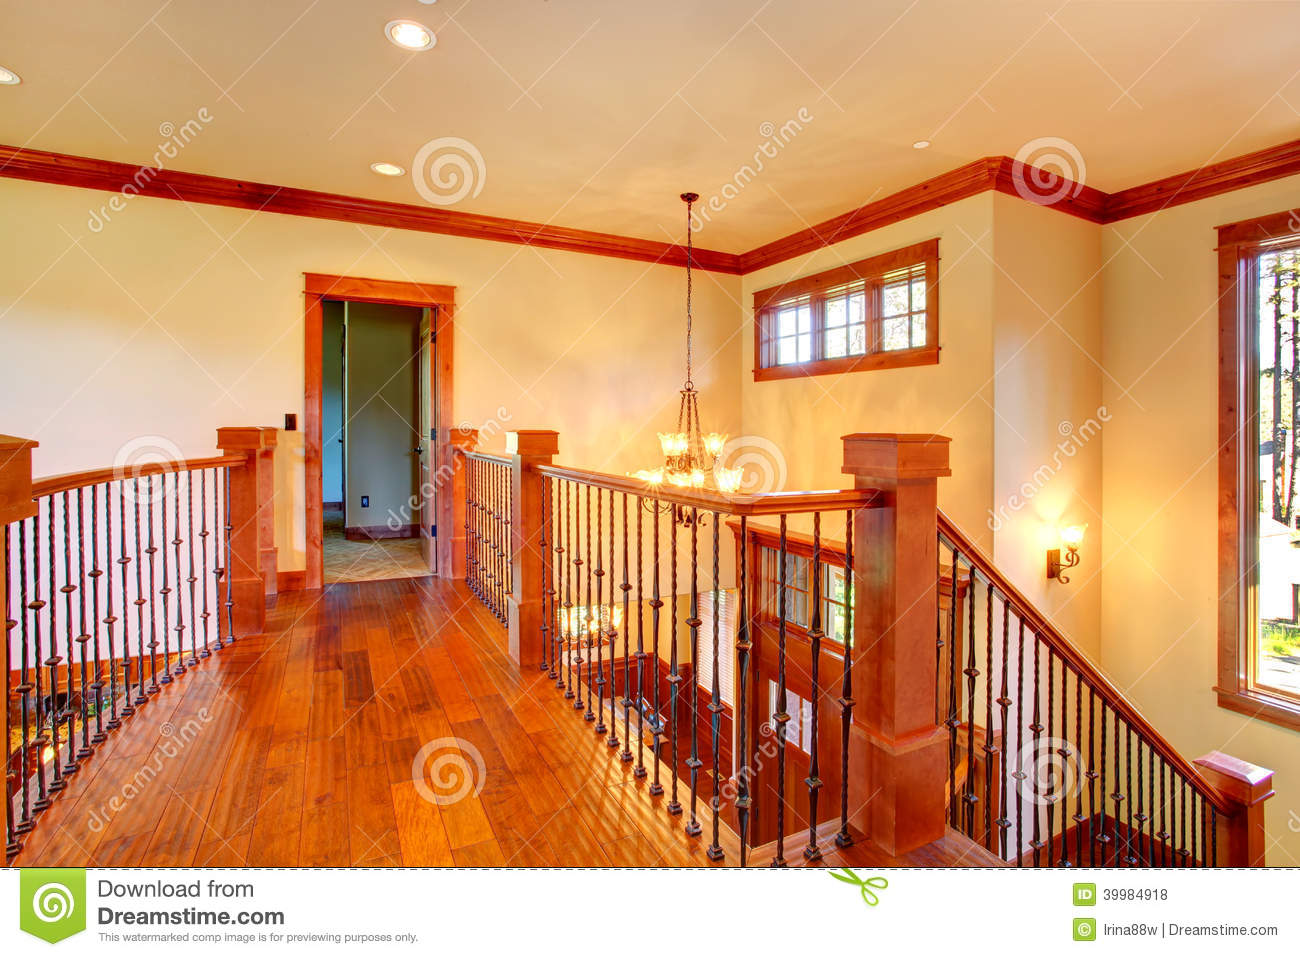 Balcony railing vector joy studio design gallery best for Interior wordreference